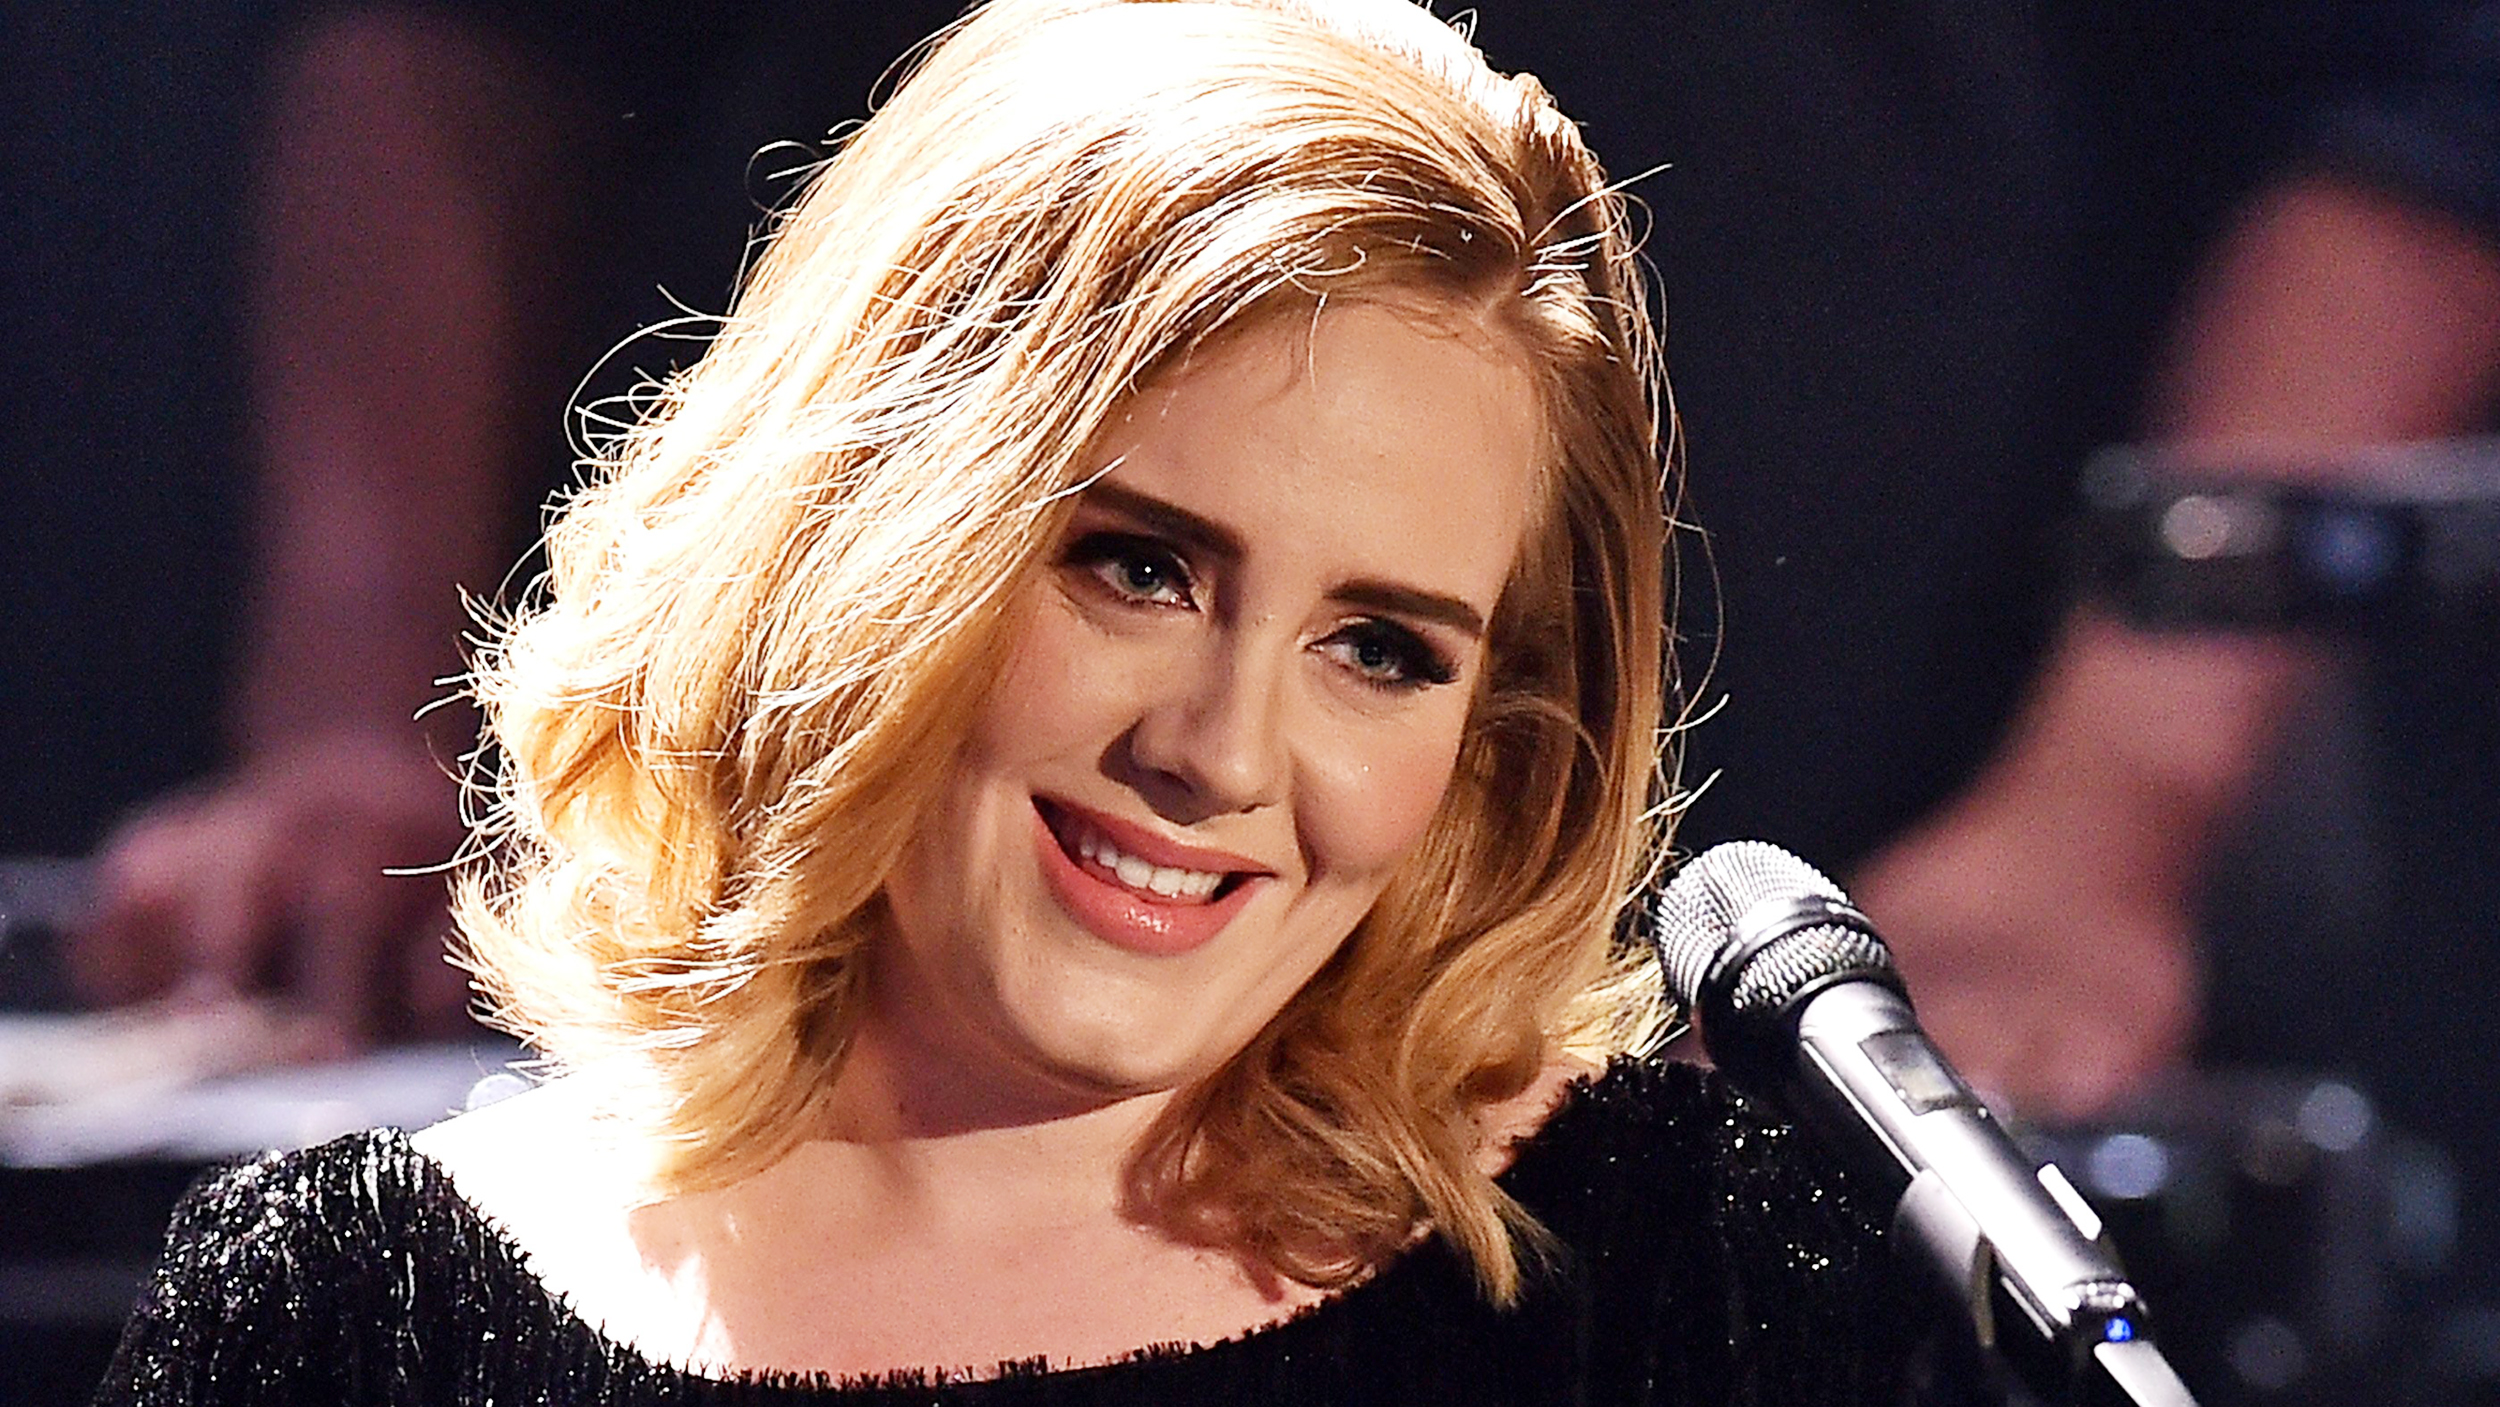 When She Was Young: Adele's New Cover Art Features